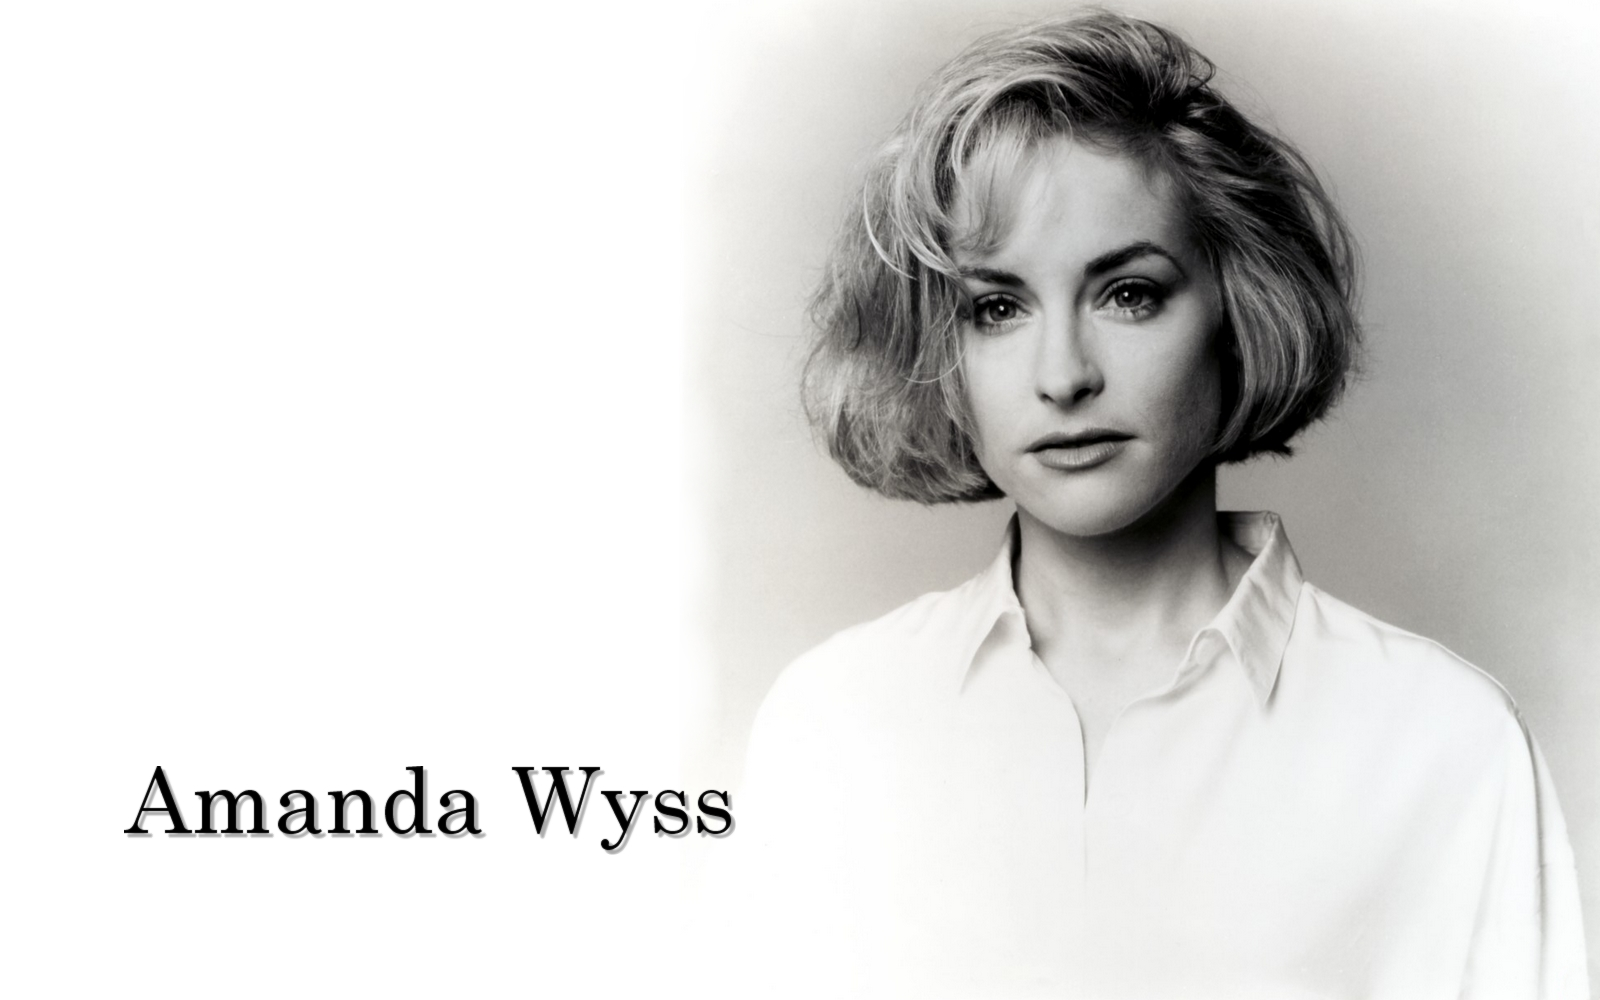 amanda wyss photos